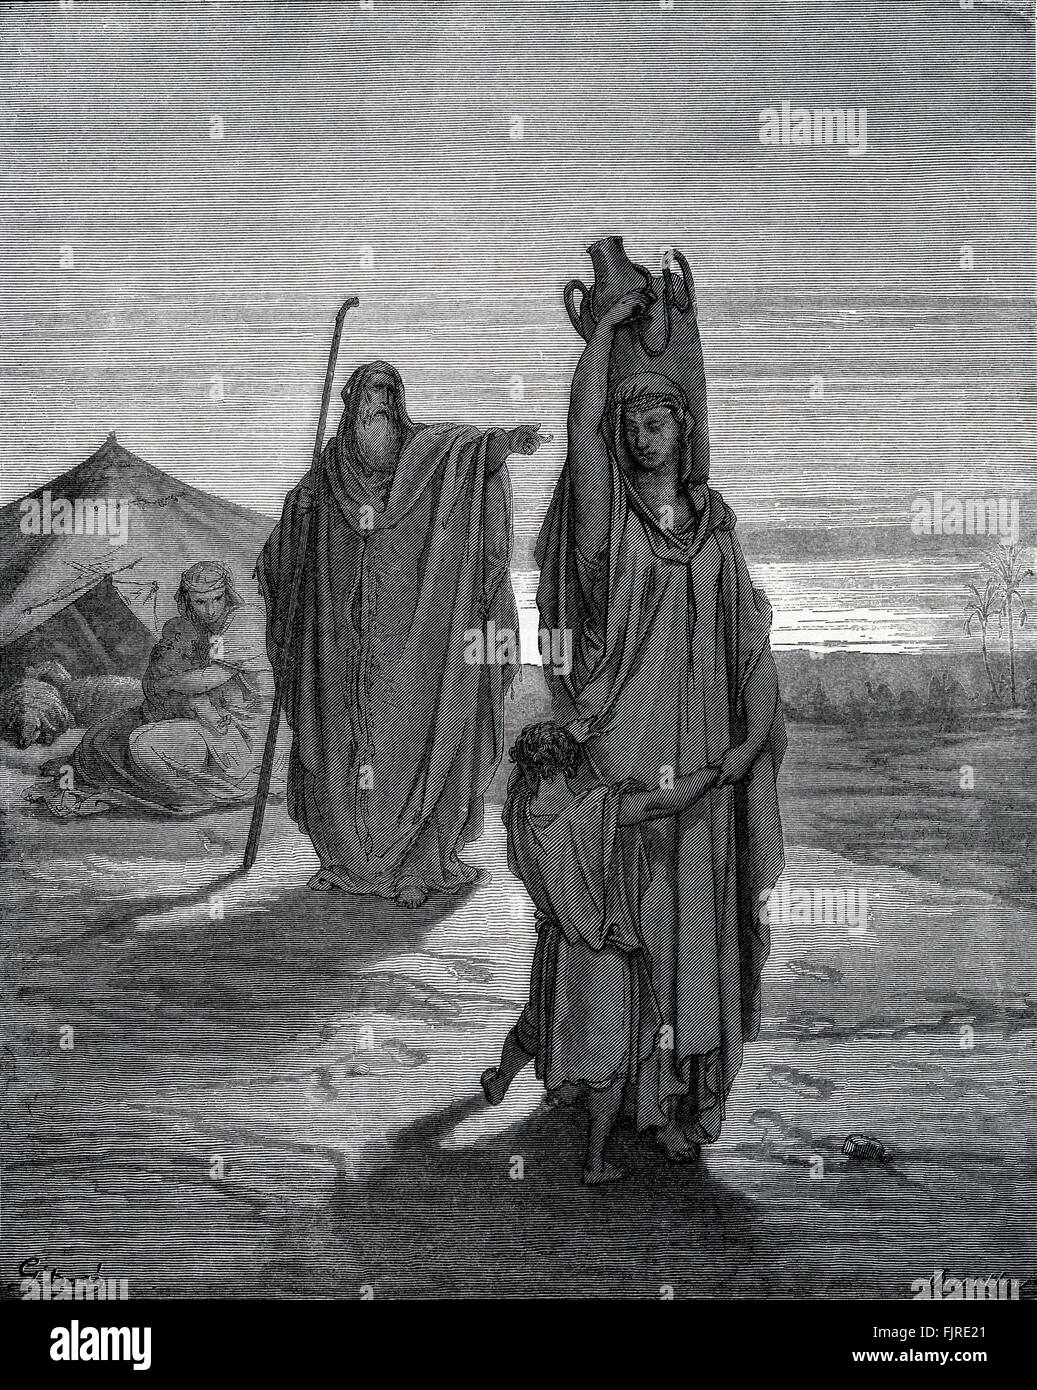 Expulsion of Hagar and Ishmael from the tent of Abraham (Genesis chapter XXI), illustration by Gustave Doré - Stock Image